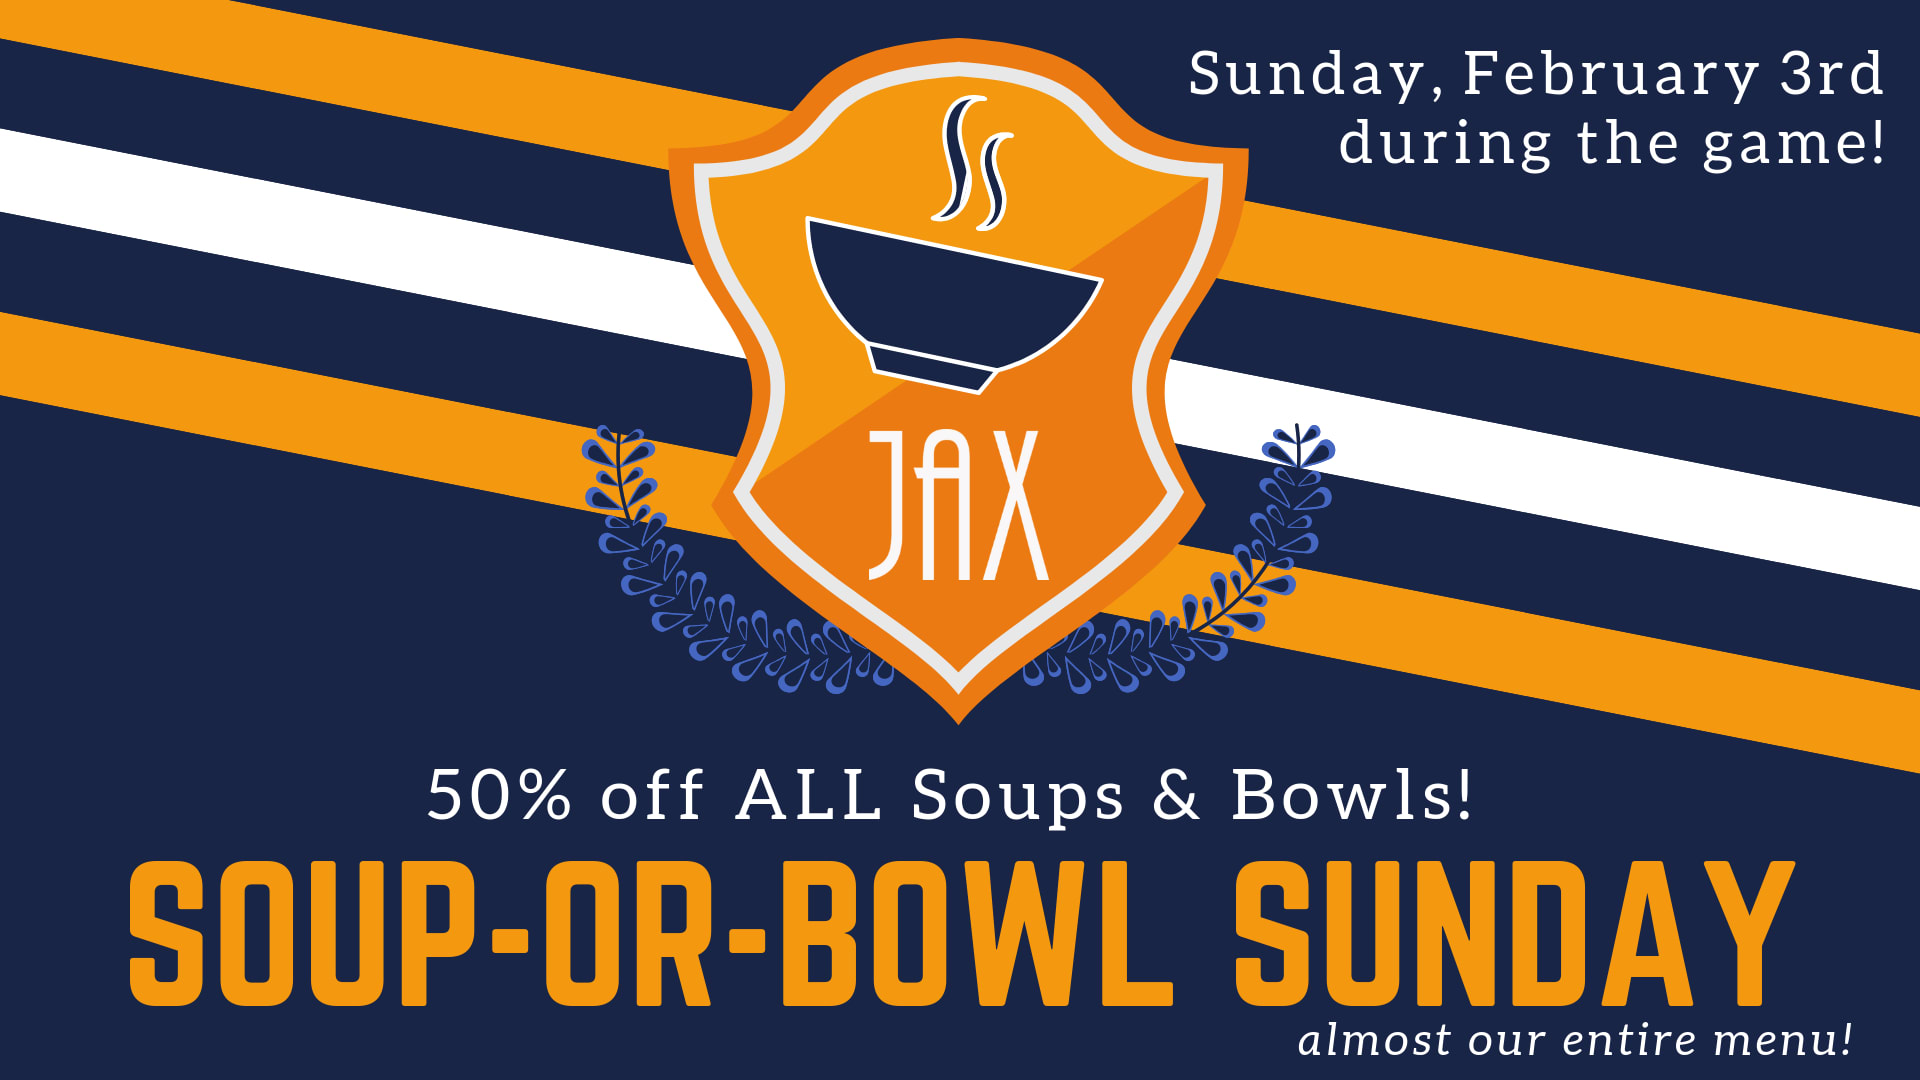 February 3 | SOUP-OR-BOWL SUNDAY